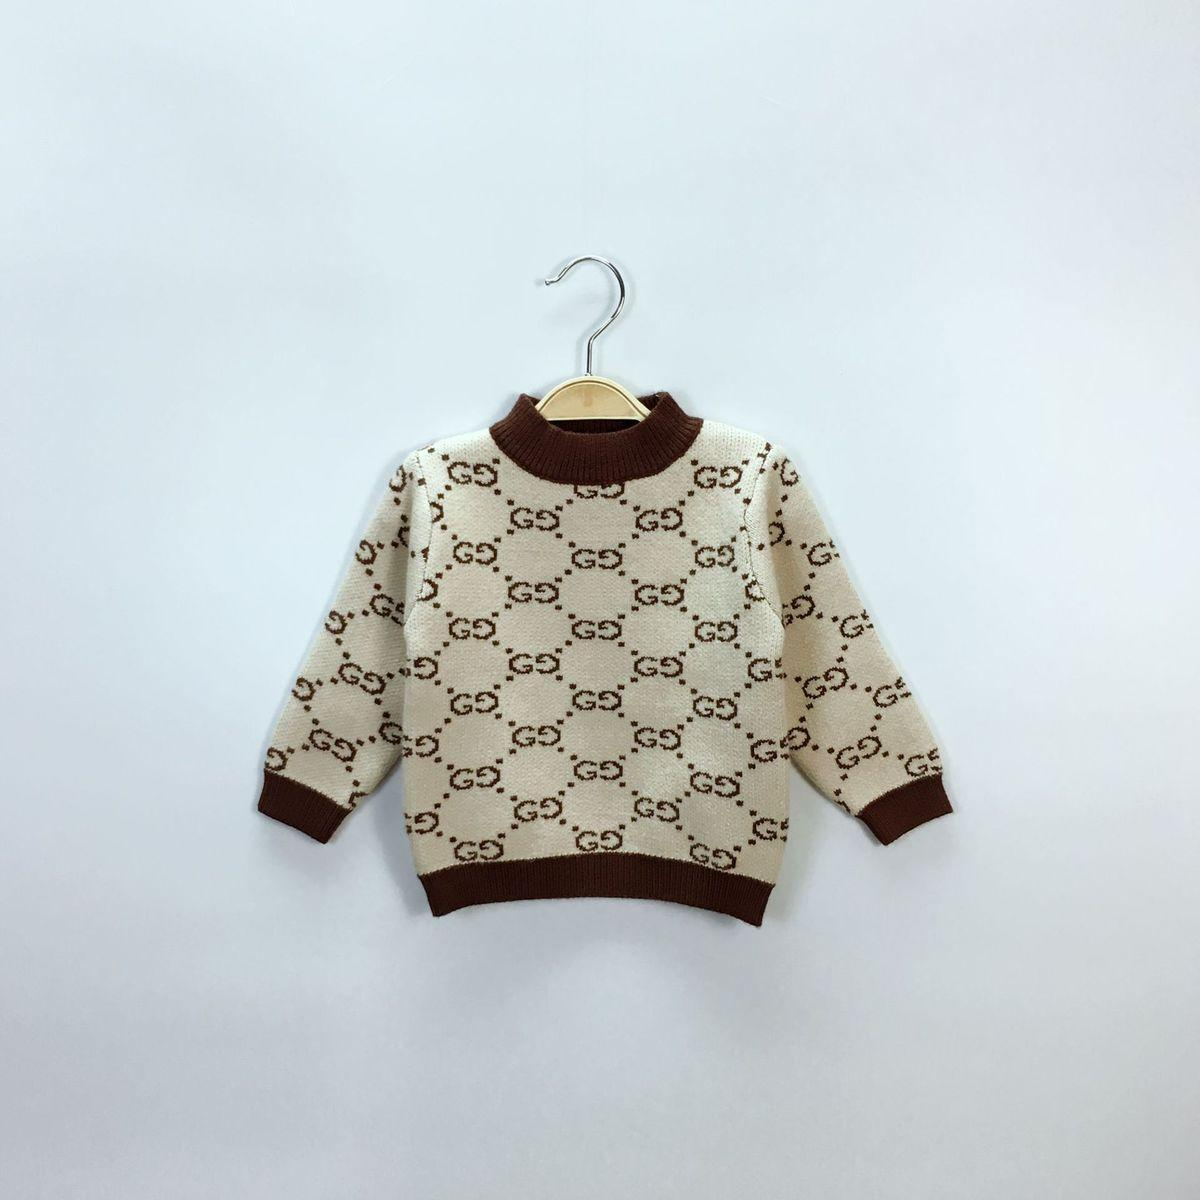 Free Knitting Patterns For Sweater Coats Girl Sweater Korean Edition Autumn Jackets And Coats Winter For Double Letter Children Boys Knitting